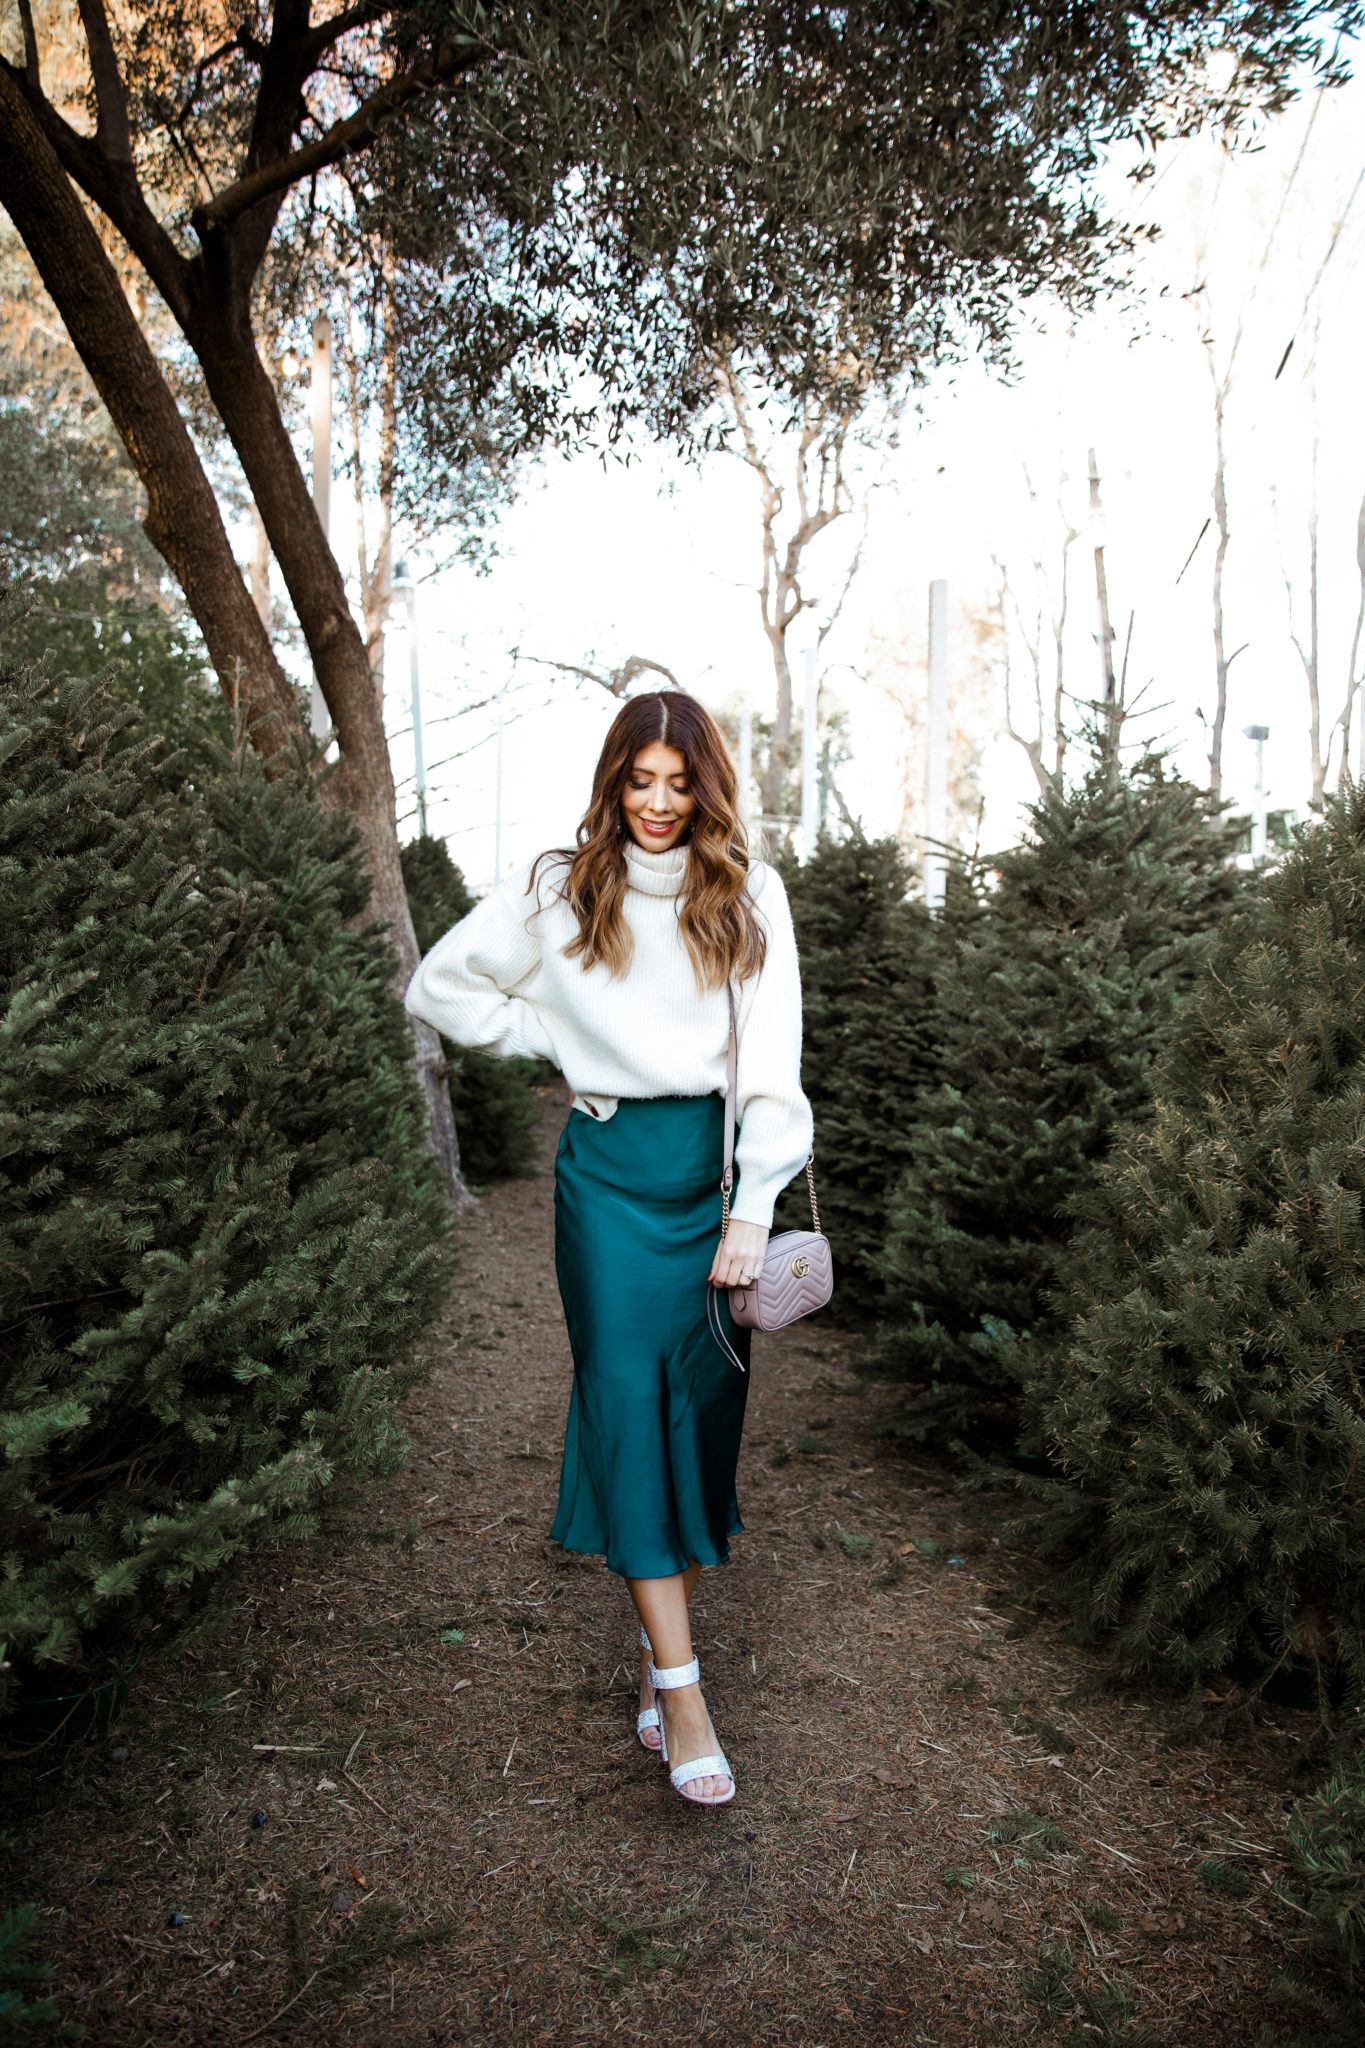 Popular San Francisco Lifestyle Blog The Girl In The